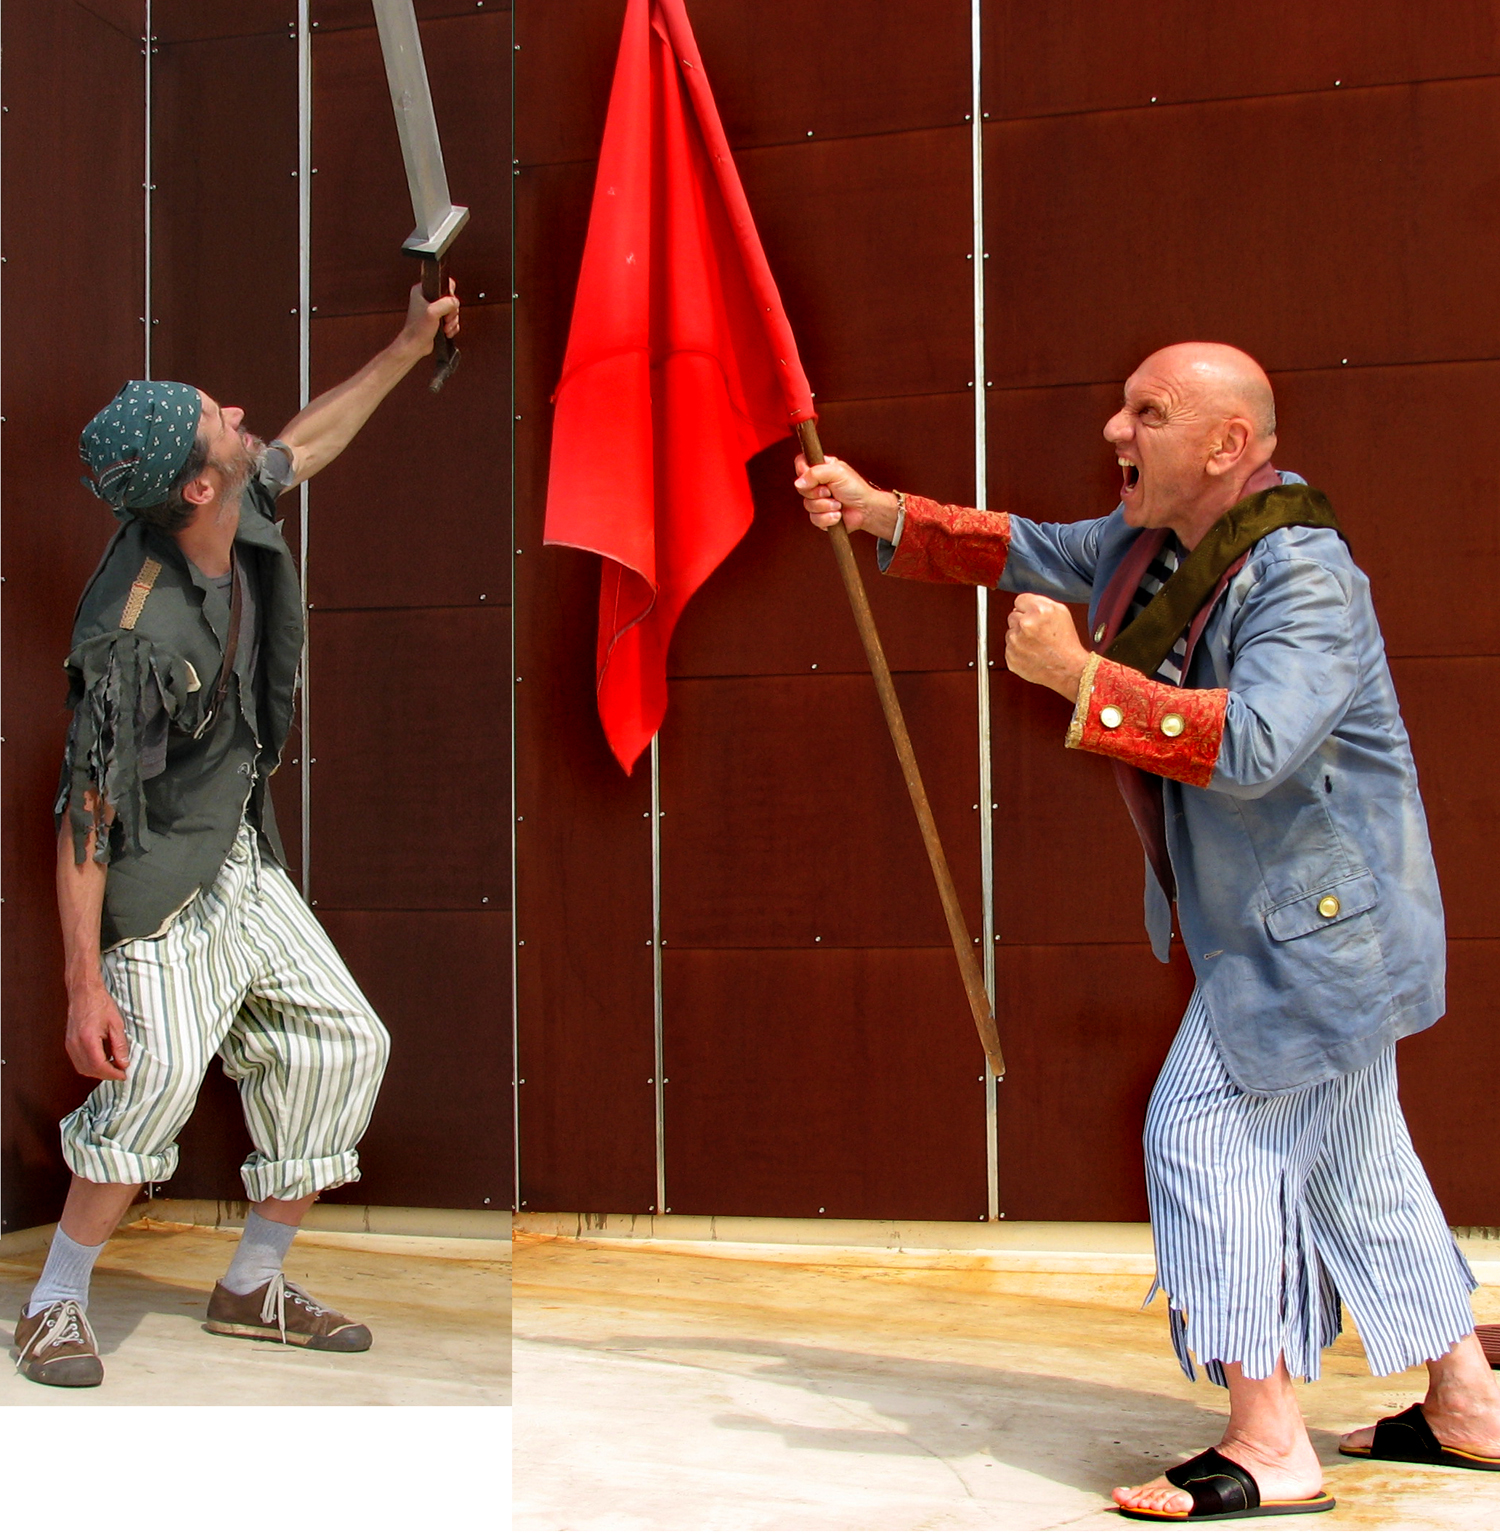 I posed friends as pirates. Compare the guy with the flag to the image from   Get Him!  , above.